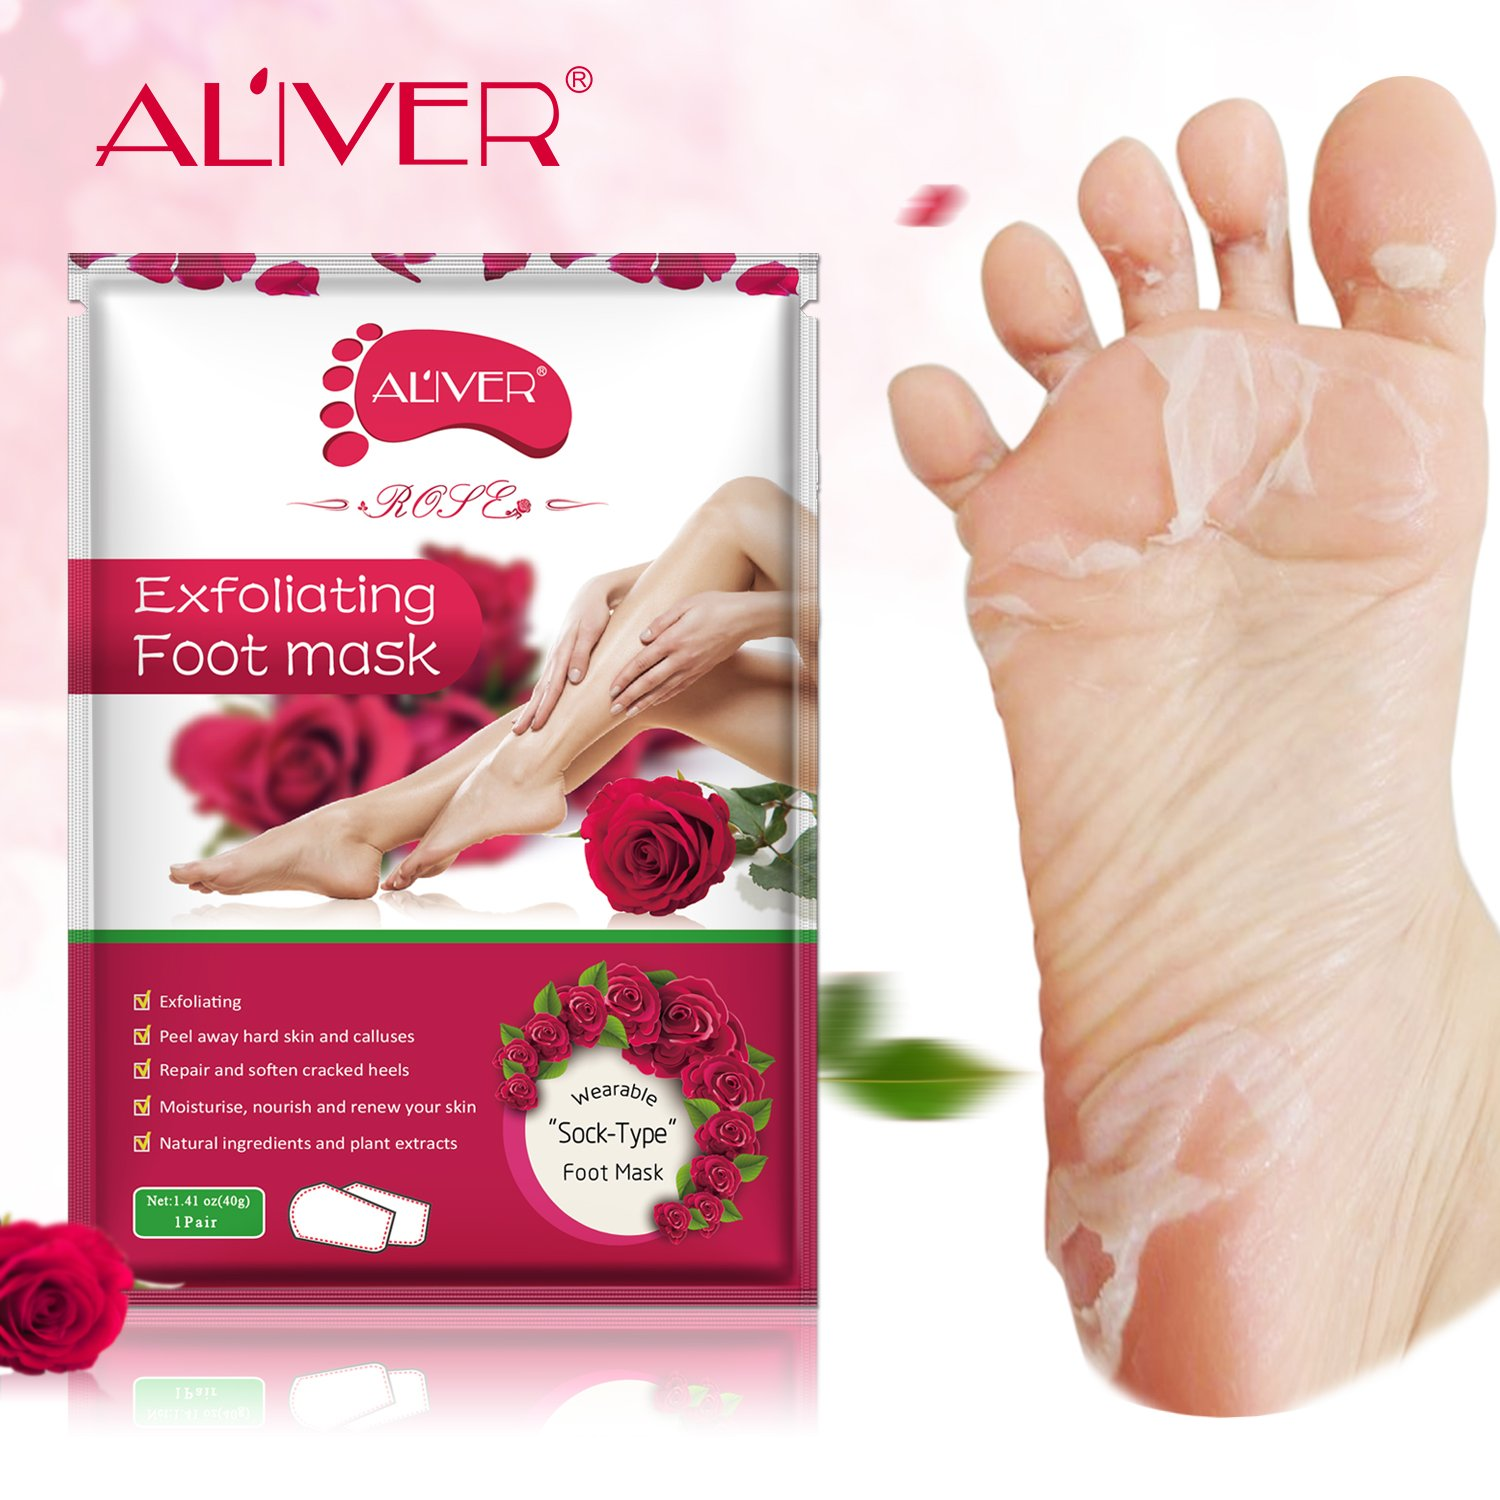 2 Pairs Foot Peeling Mask, LeSB Rose Scented Exfoliating Callus Peel Booties, Baby Your Foot Naturally in 1 Week